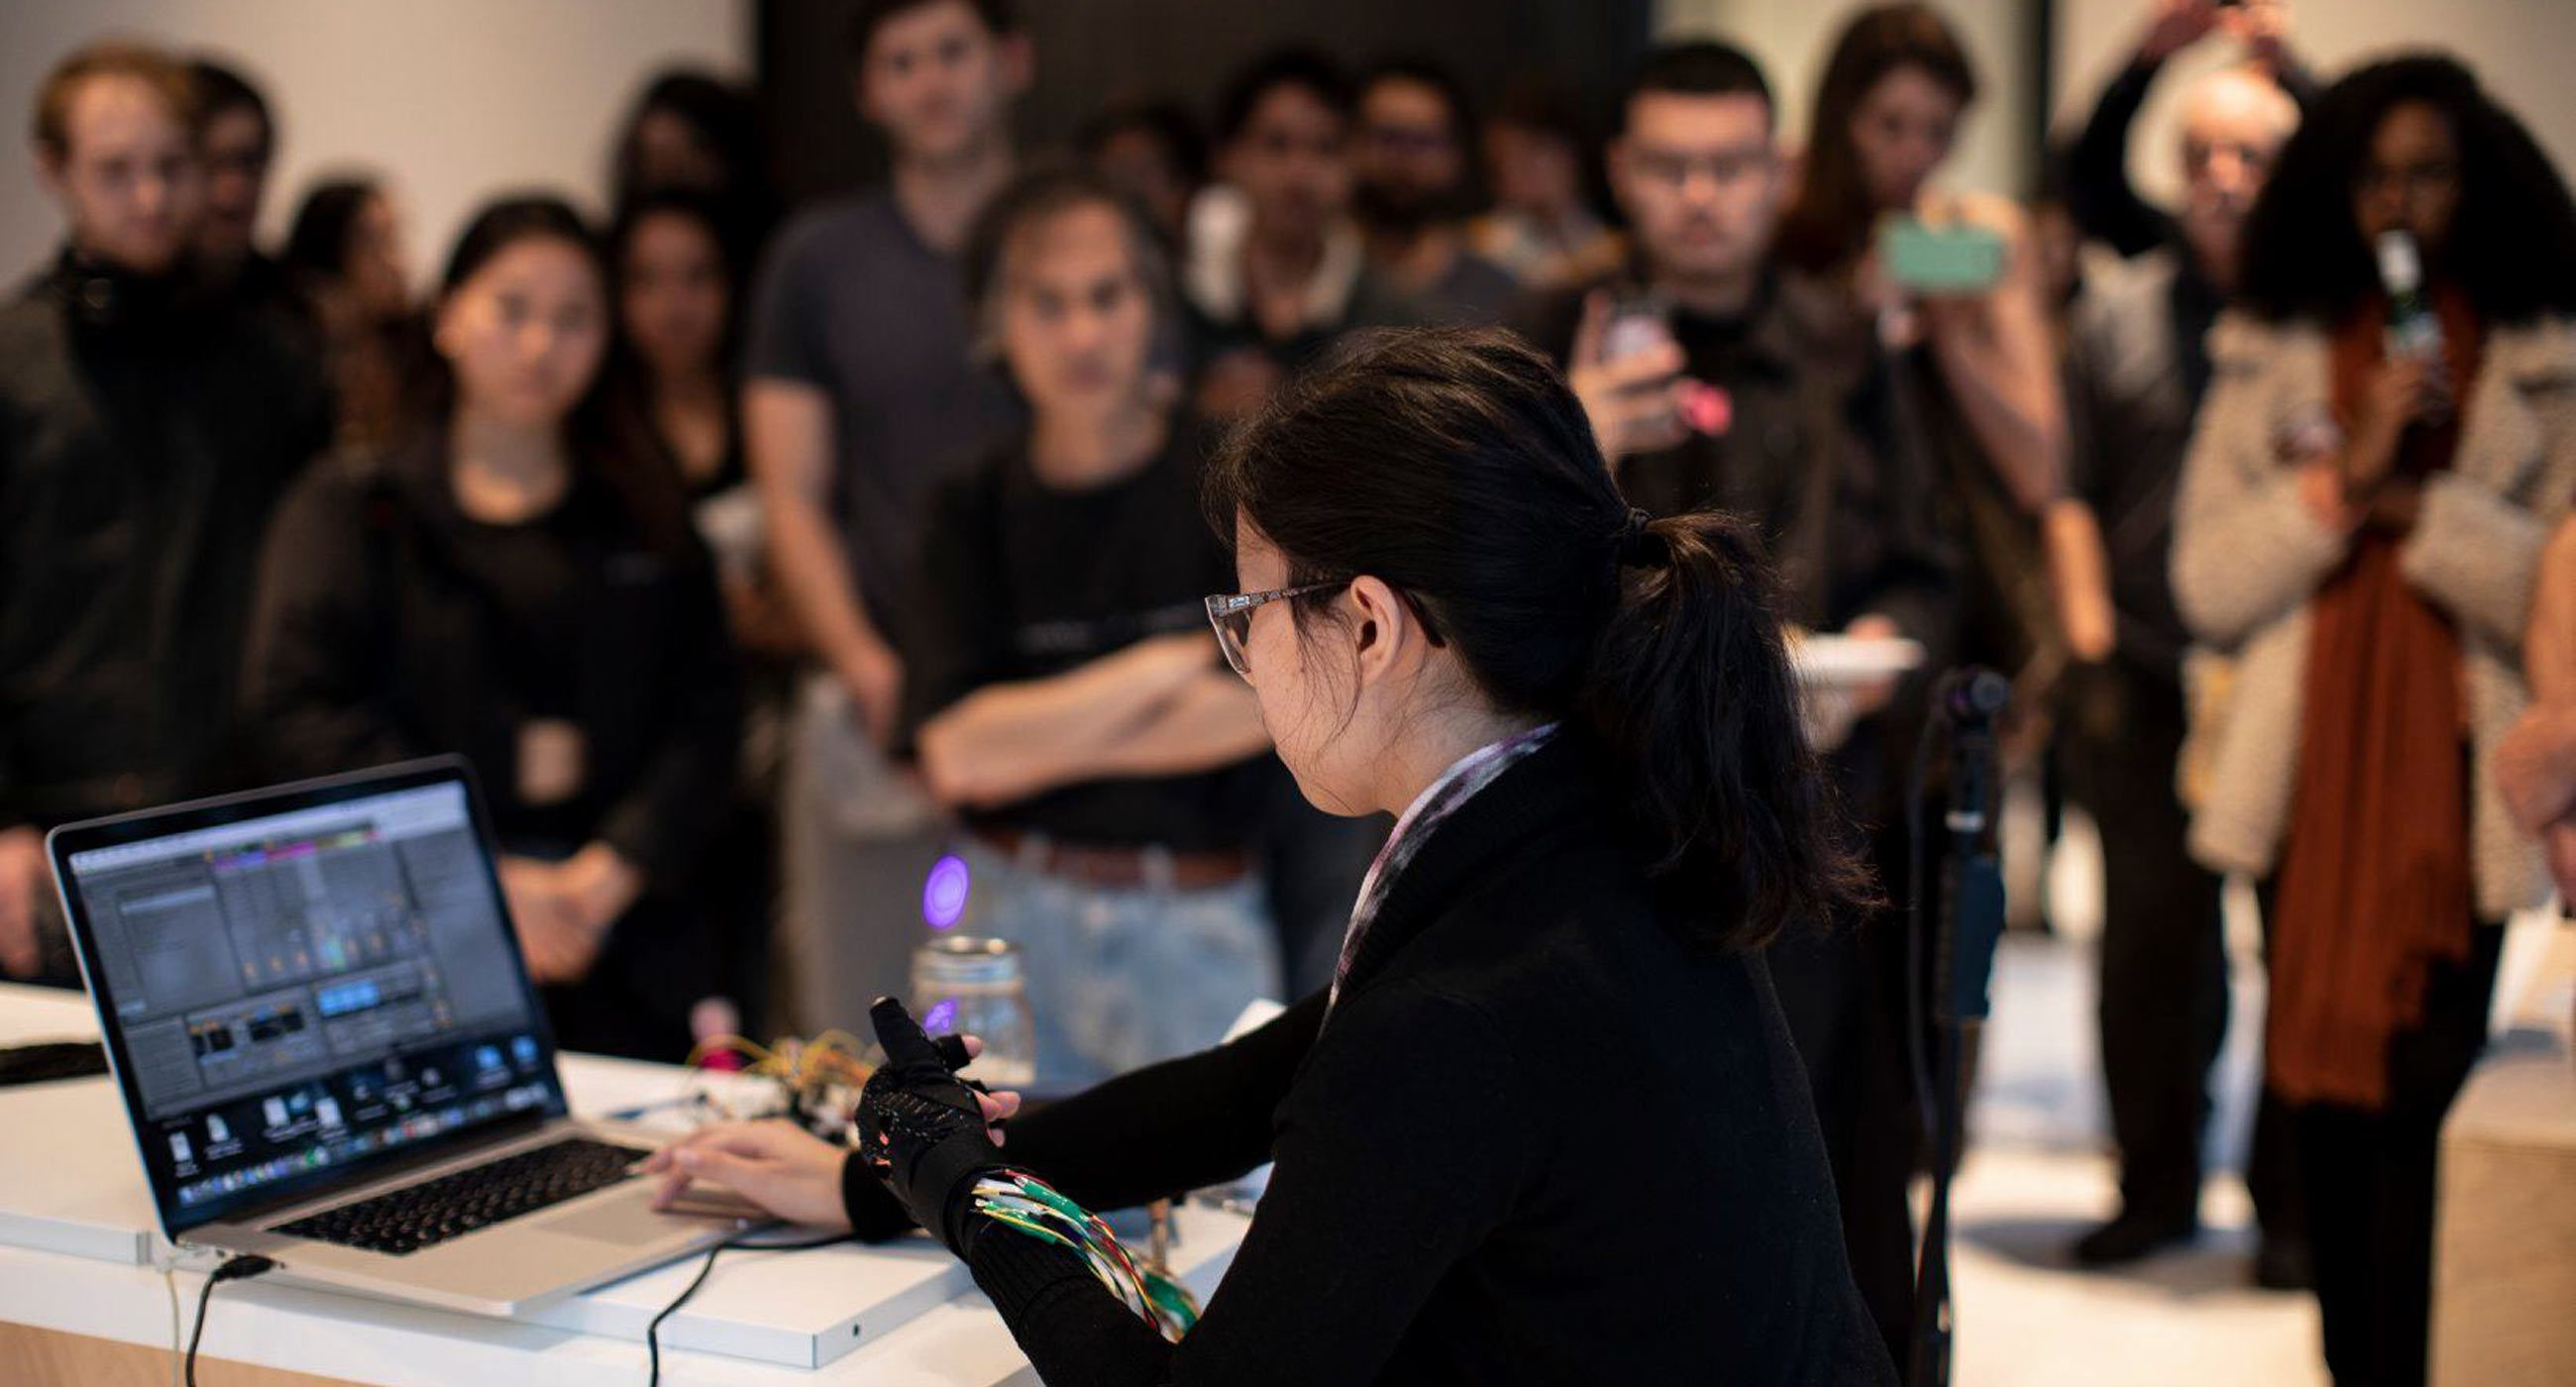 Sara Sithi-Amnuai wearing a custom glove interface sitting in front of a laptop and a crowd of standing people